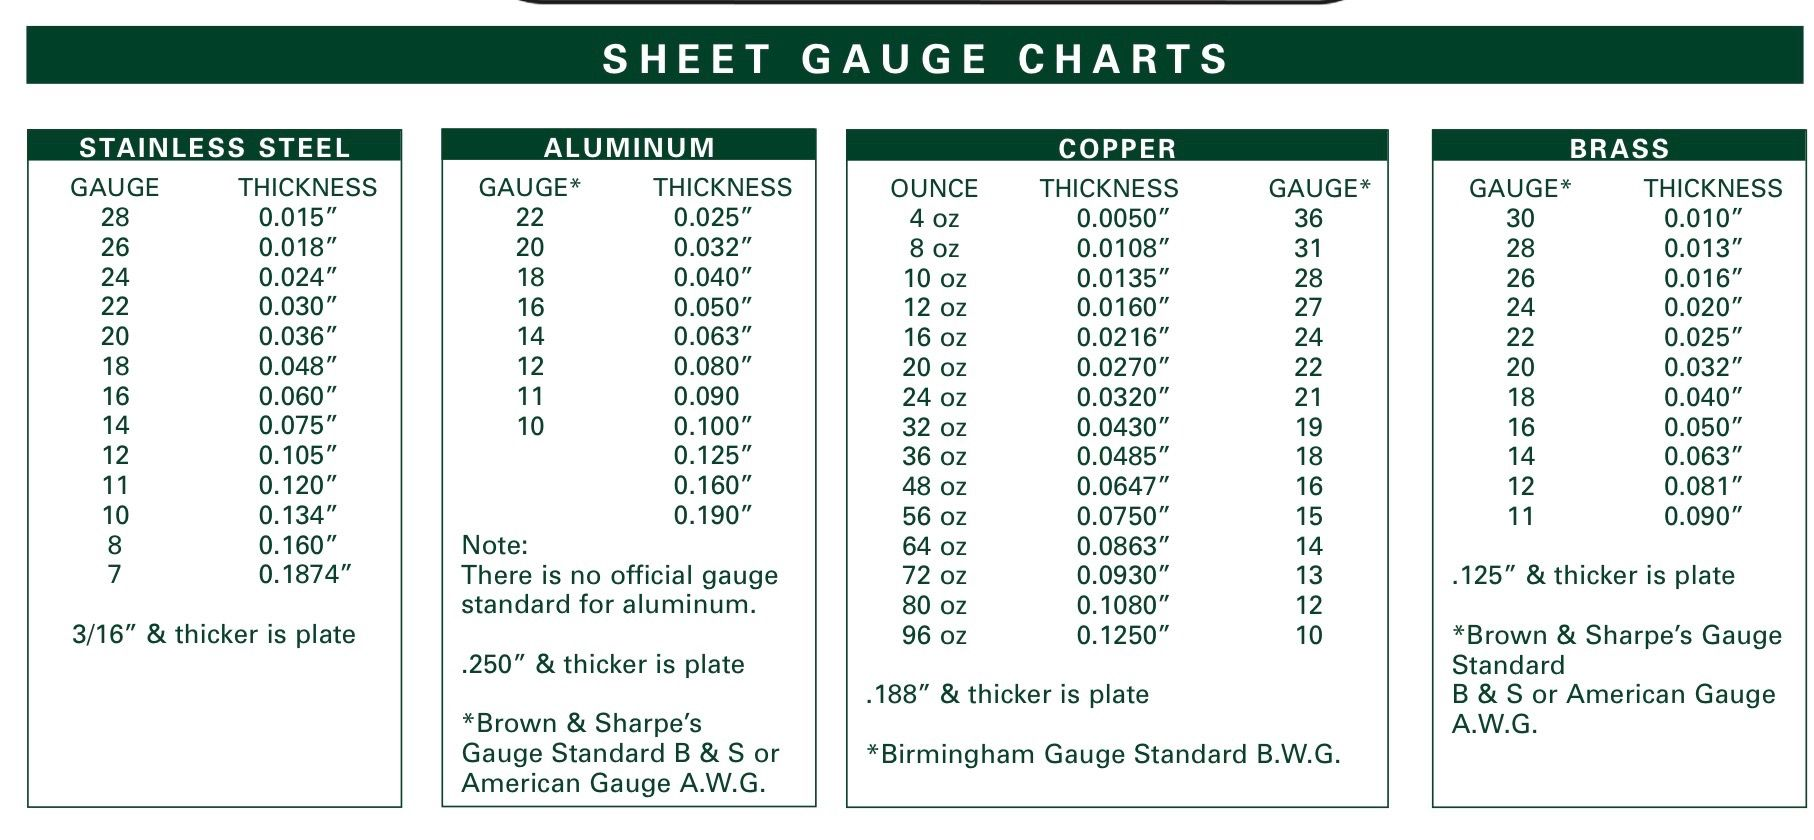 Pin By Laurie Simpson On Charts Metal Gauge Sheet Metal Shop Steel Sheet Metal